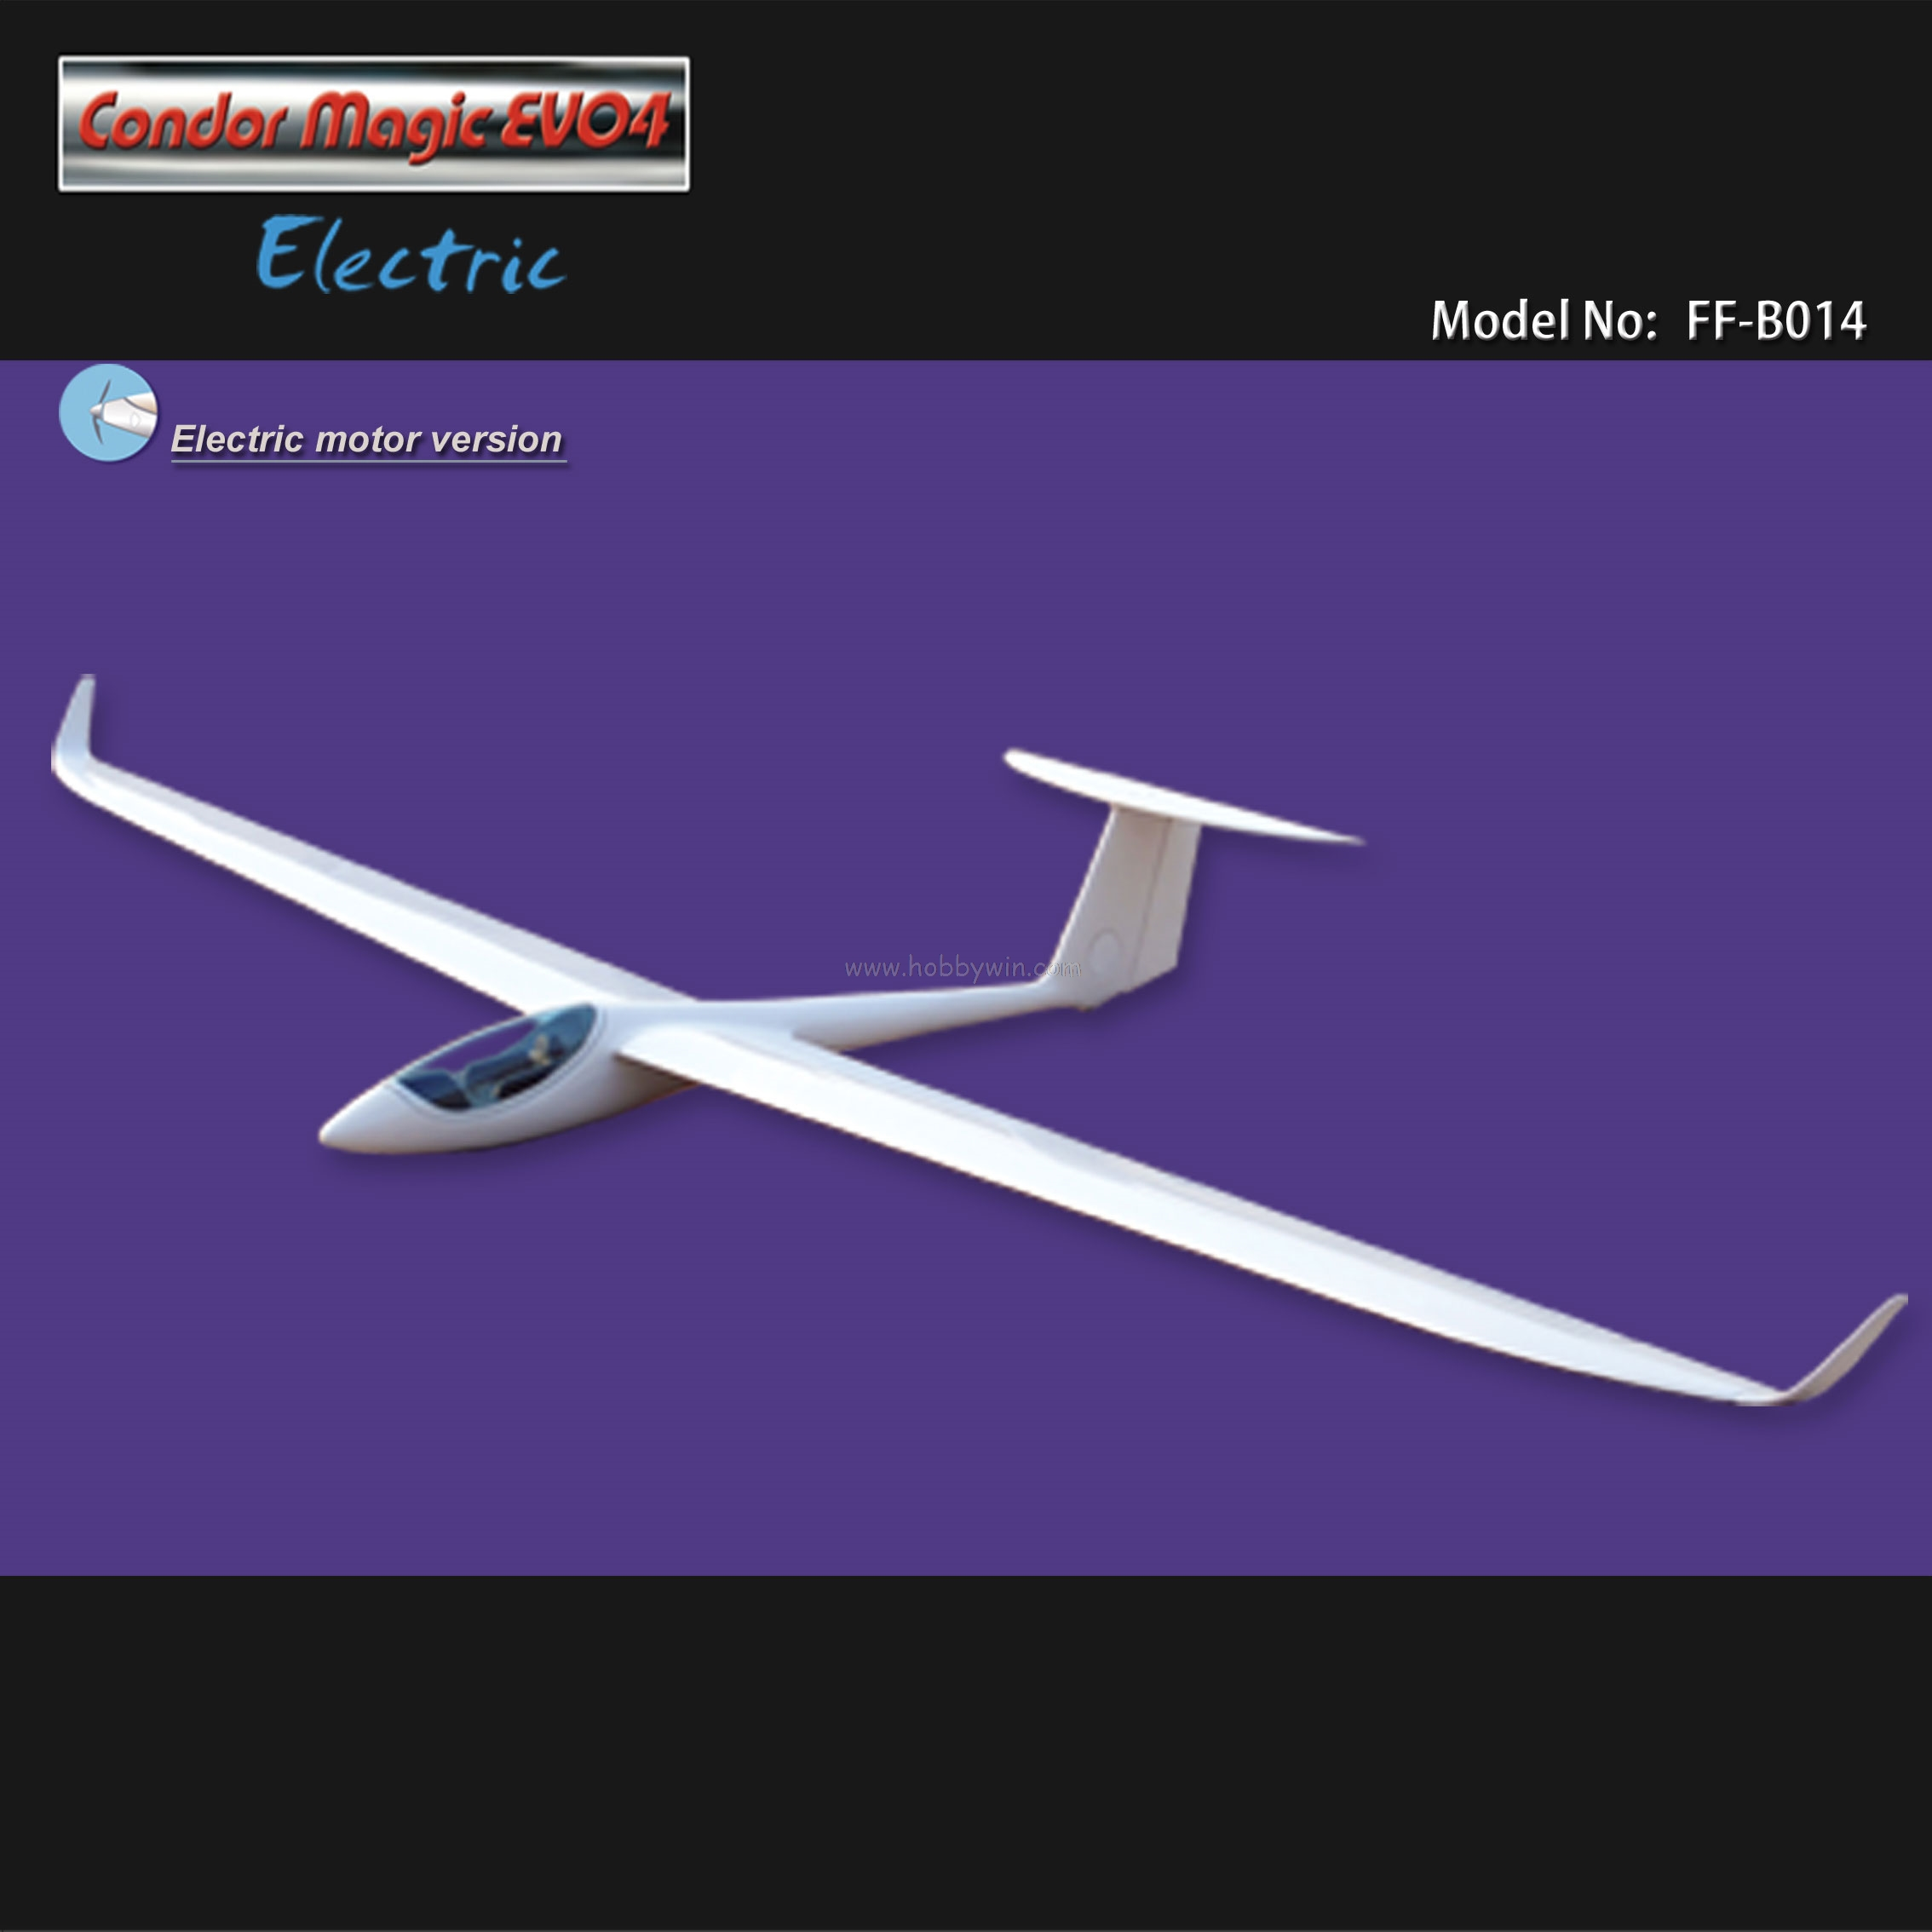 US $348 0 |Condor Magic EVO4 Electric Glider 3000mm PNP with Motor &  Propeller & Esc & Servo RC Fiberglass Sailplane-in RC Airplanes from Toys &